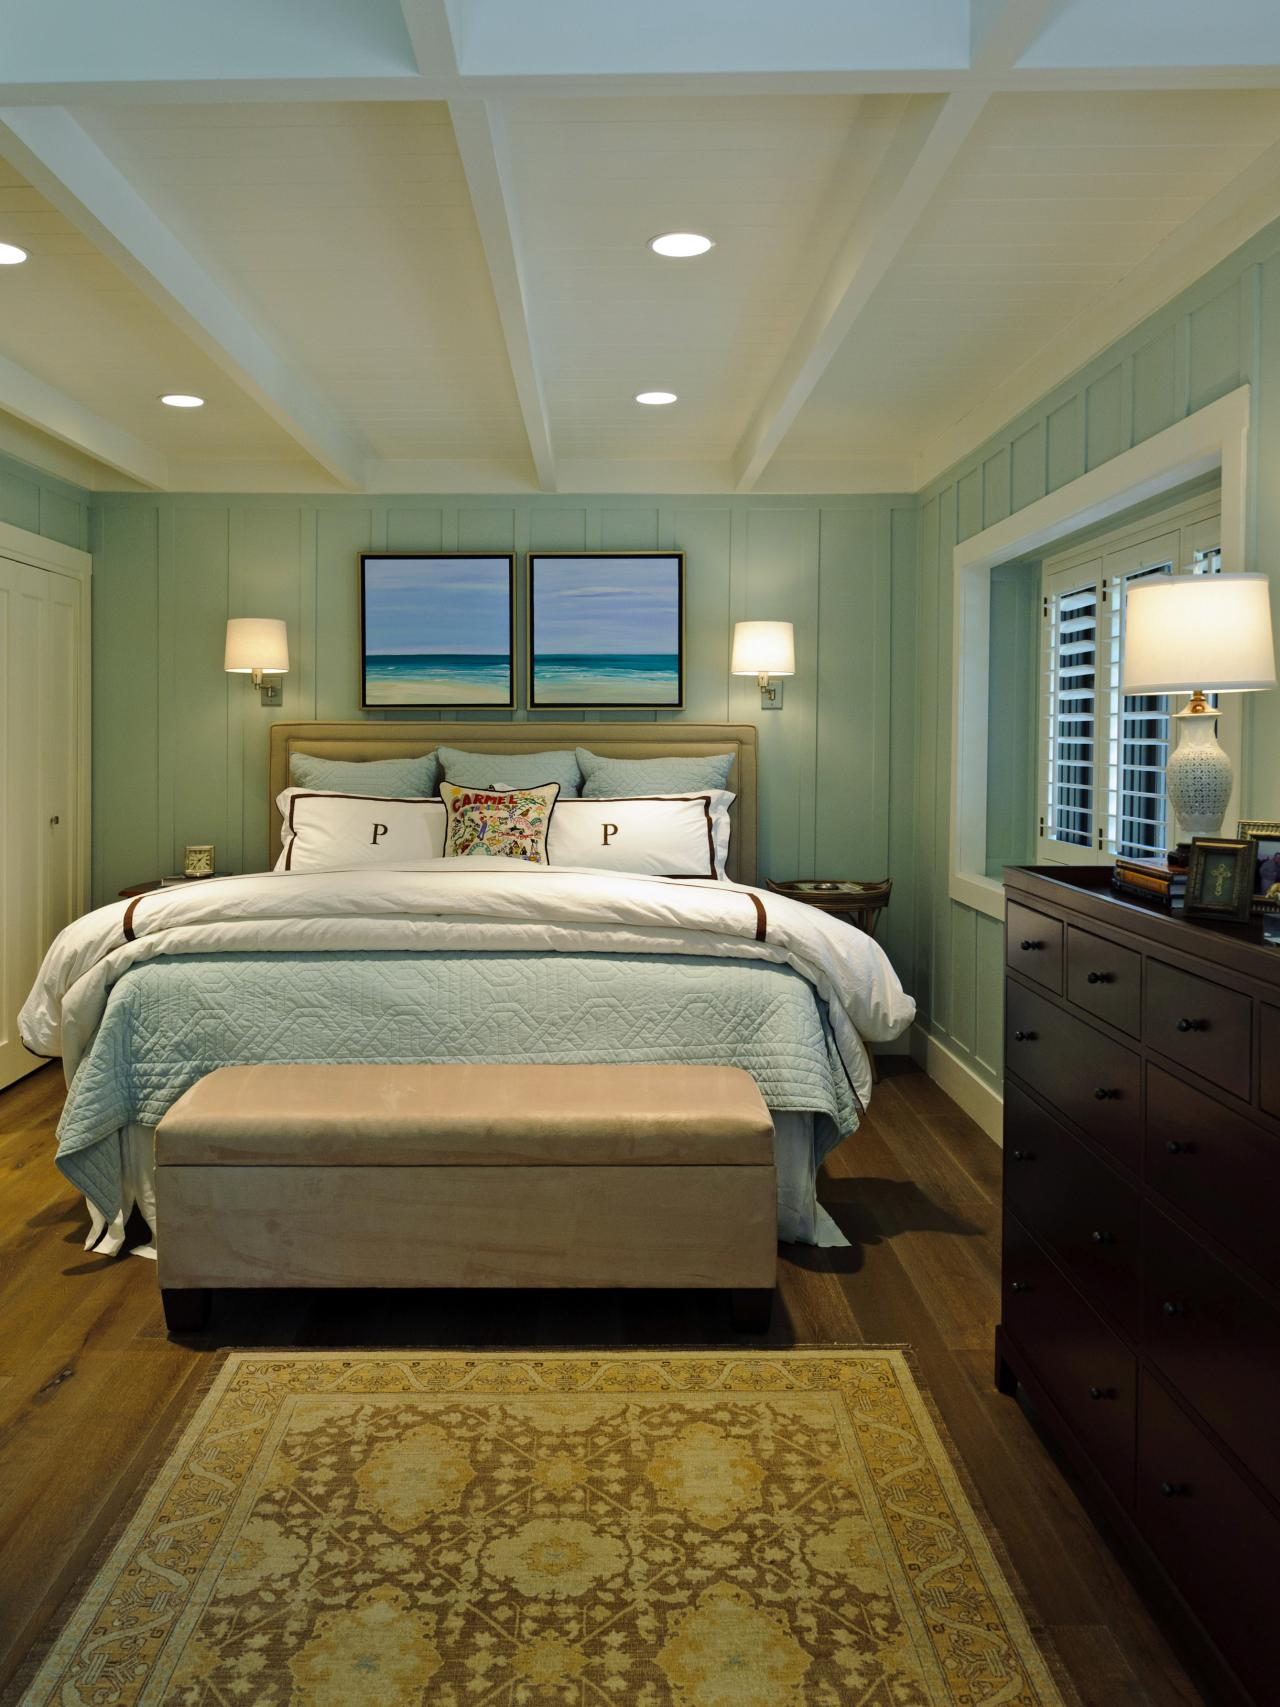 16 beach style bedroom decorating ideas for Bedroom room decor ideas